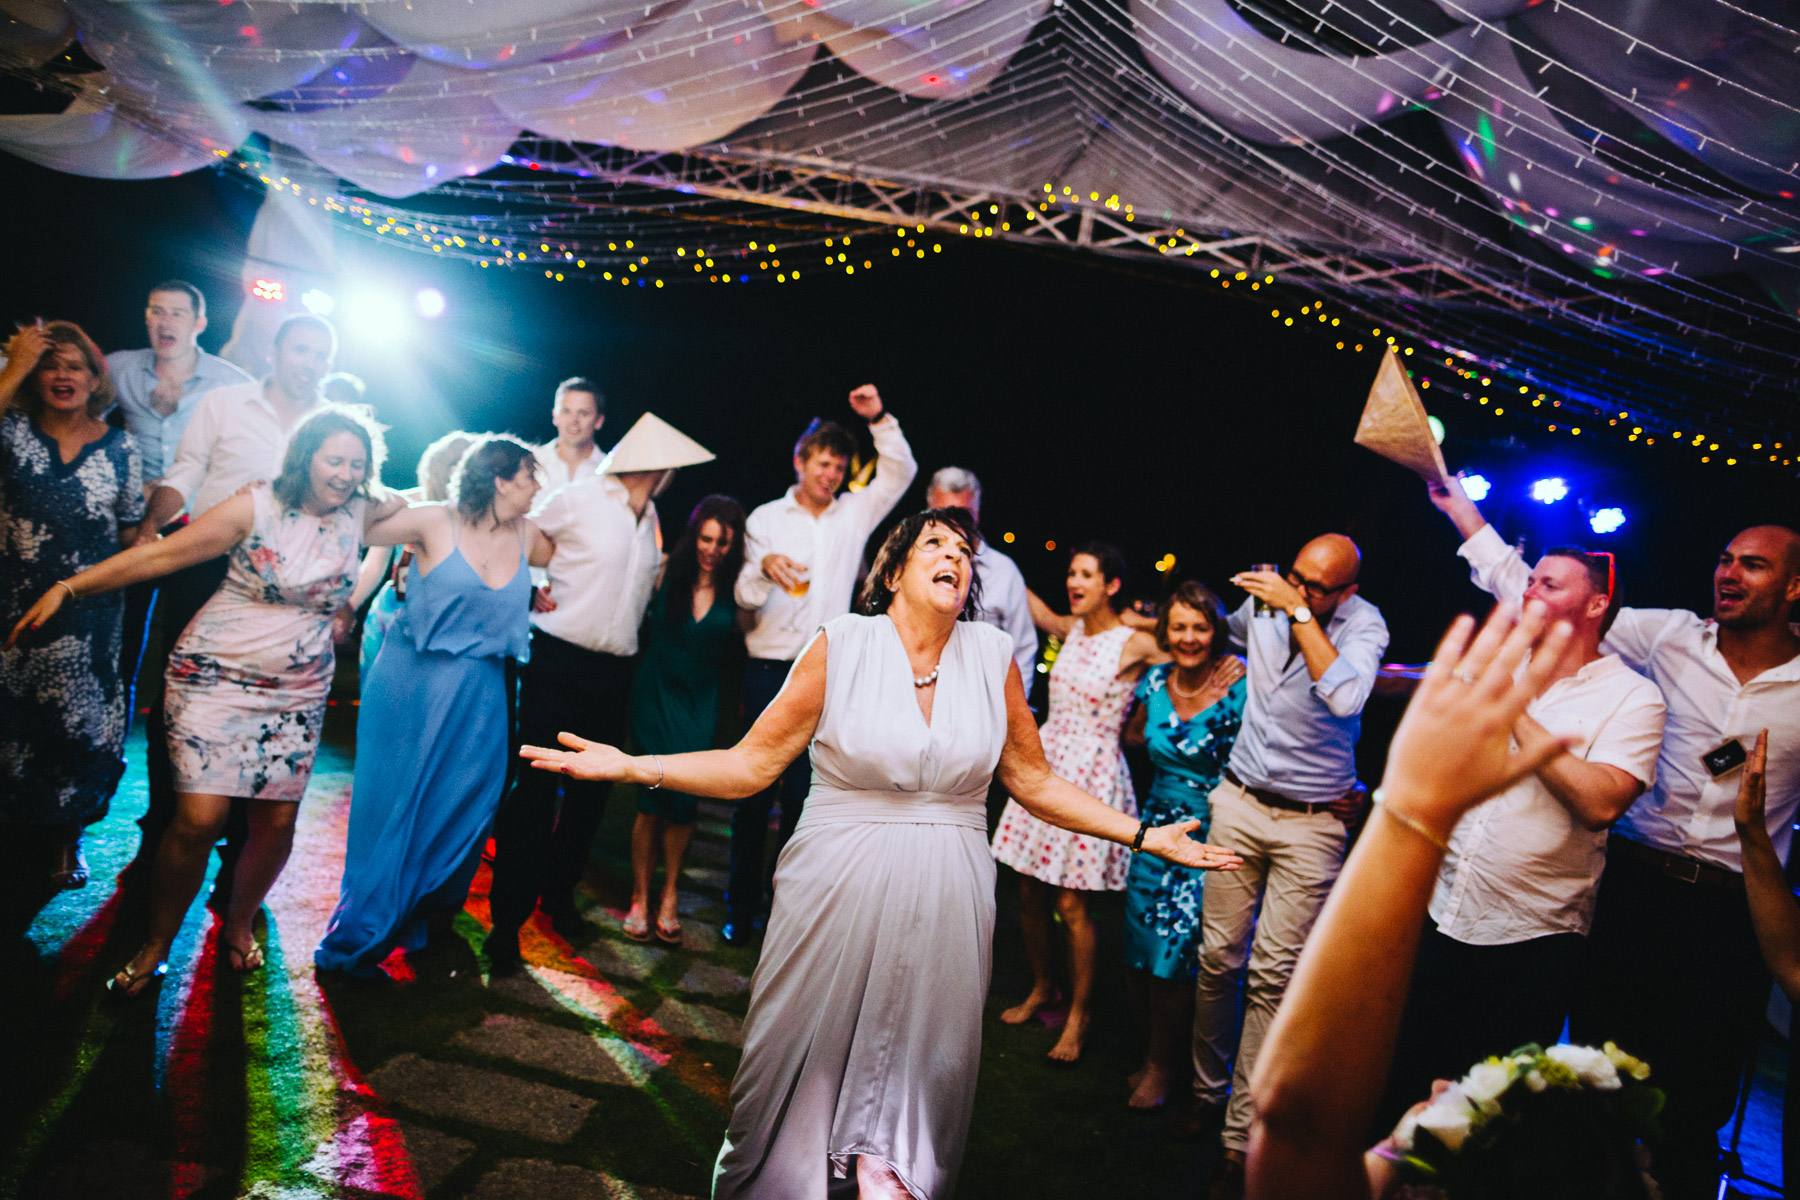 Thailand-Wedding-Party-Photography-36